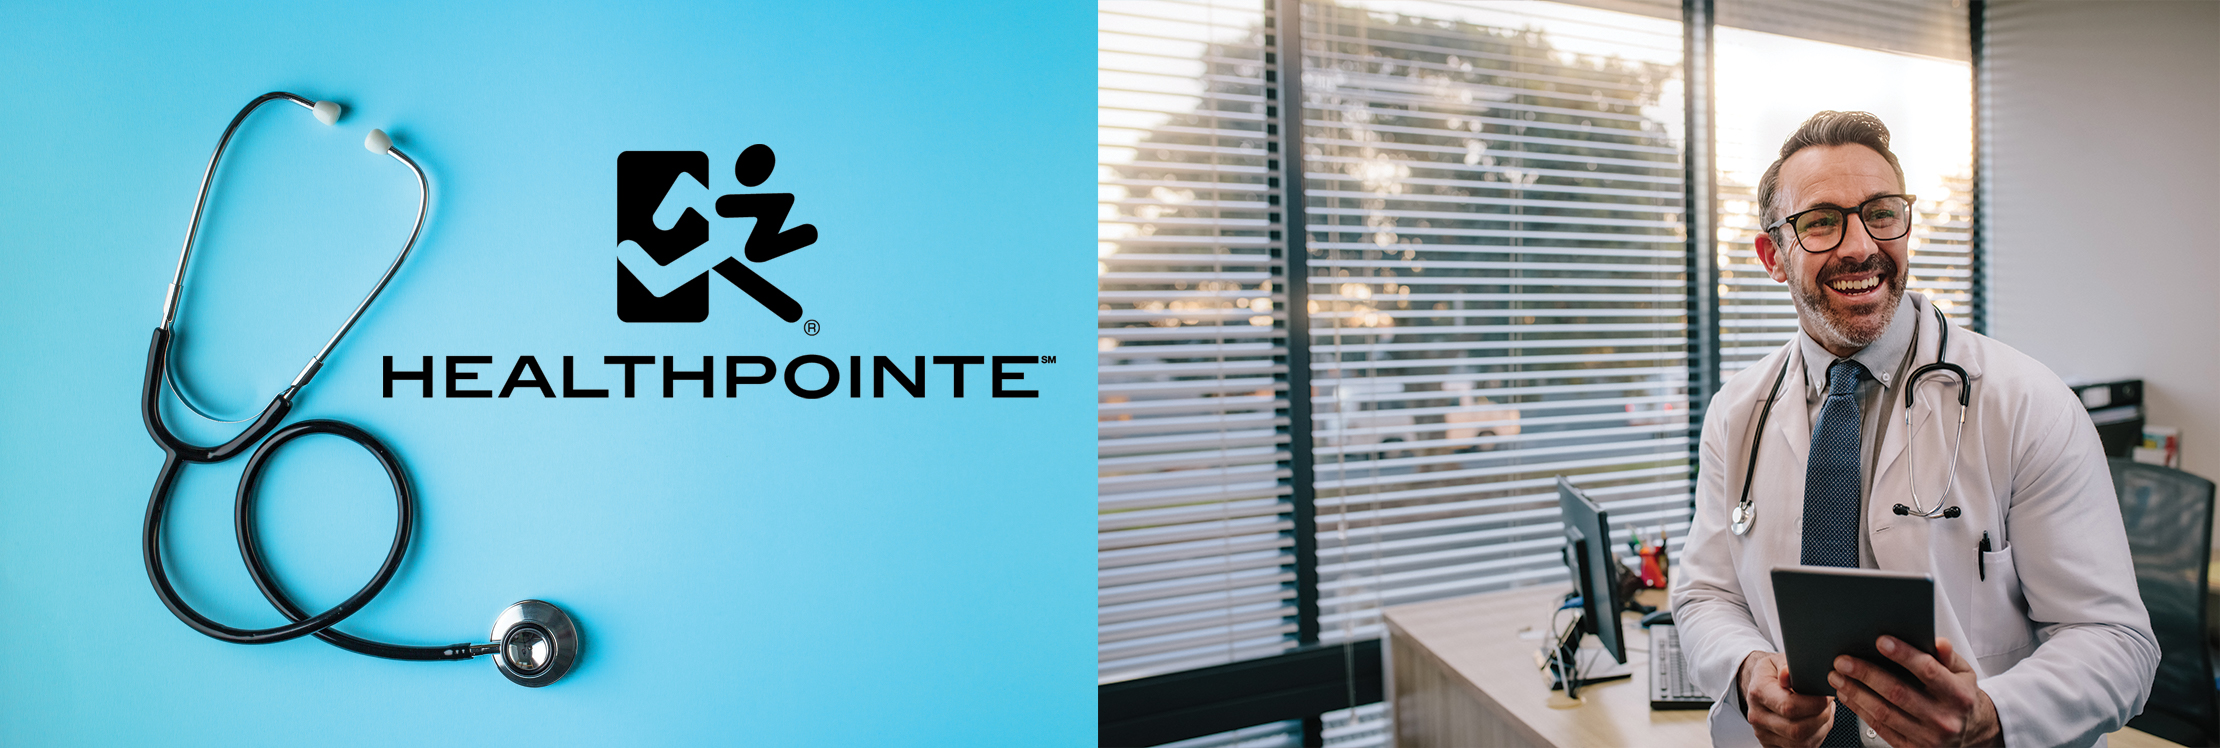 Healthpointe reviews | Medical Centers at 27455 Tierra Alta Way - Temecula CA